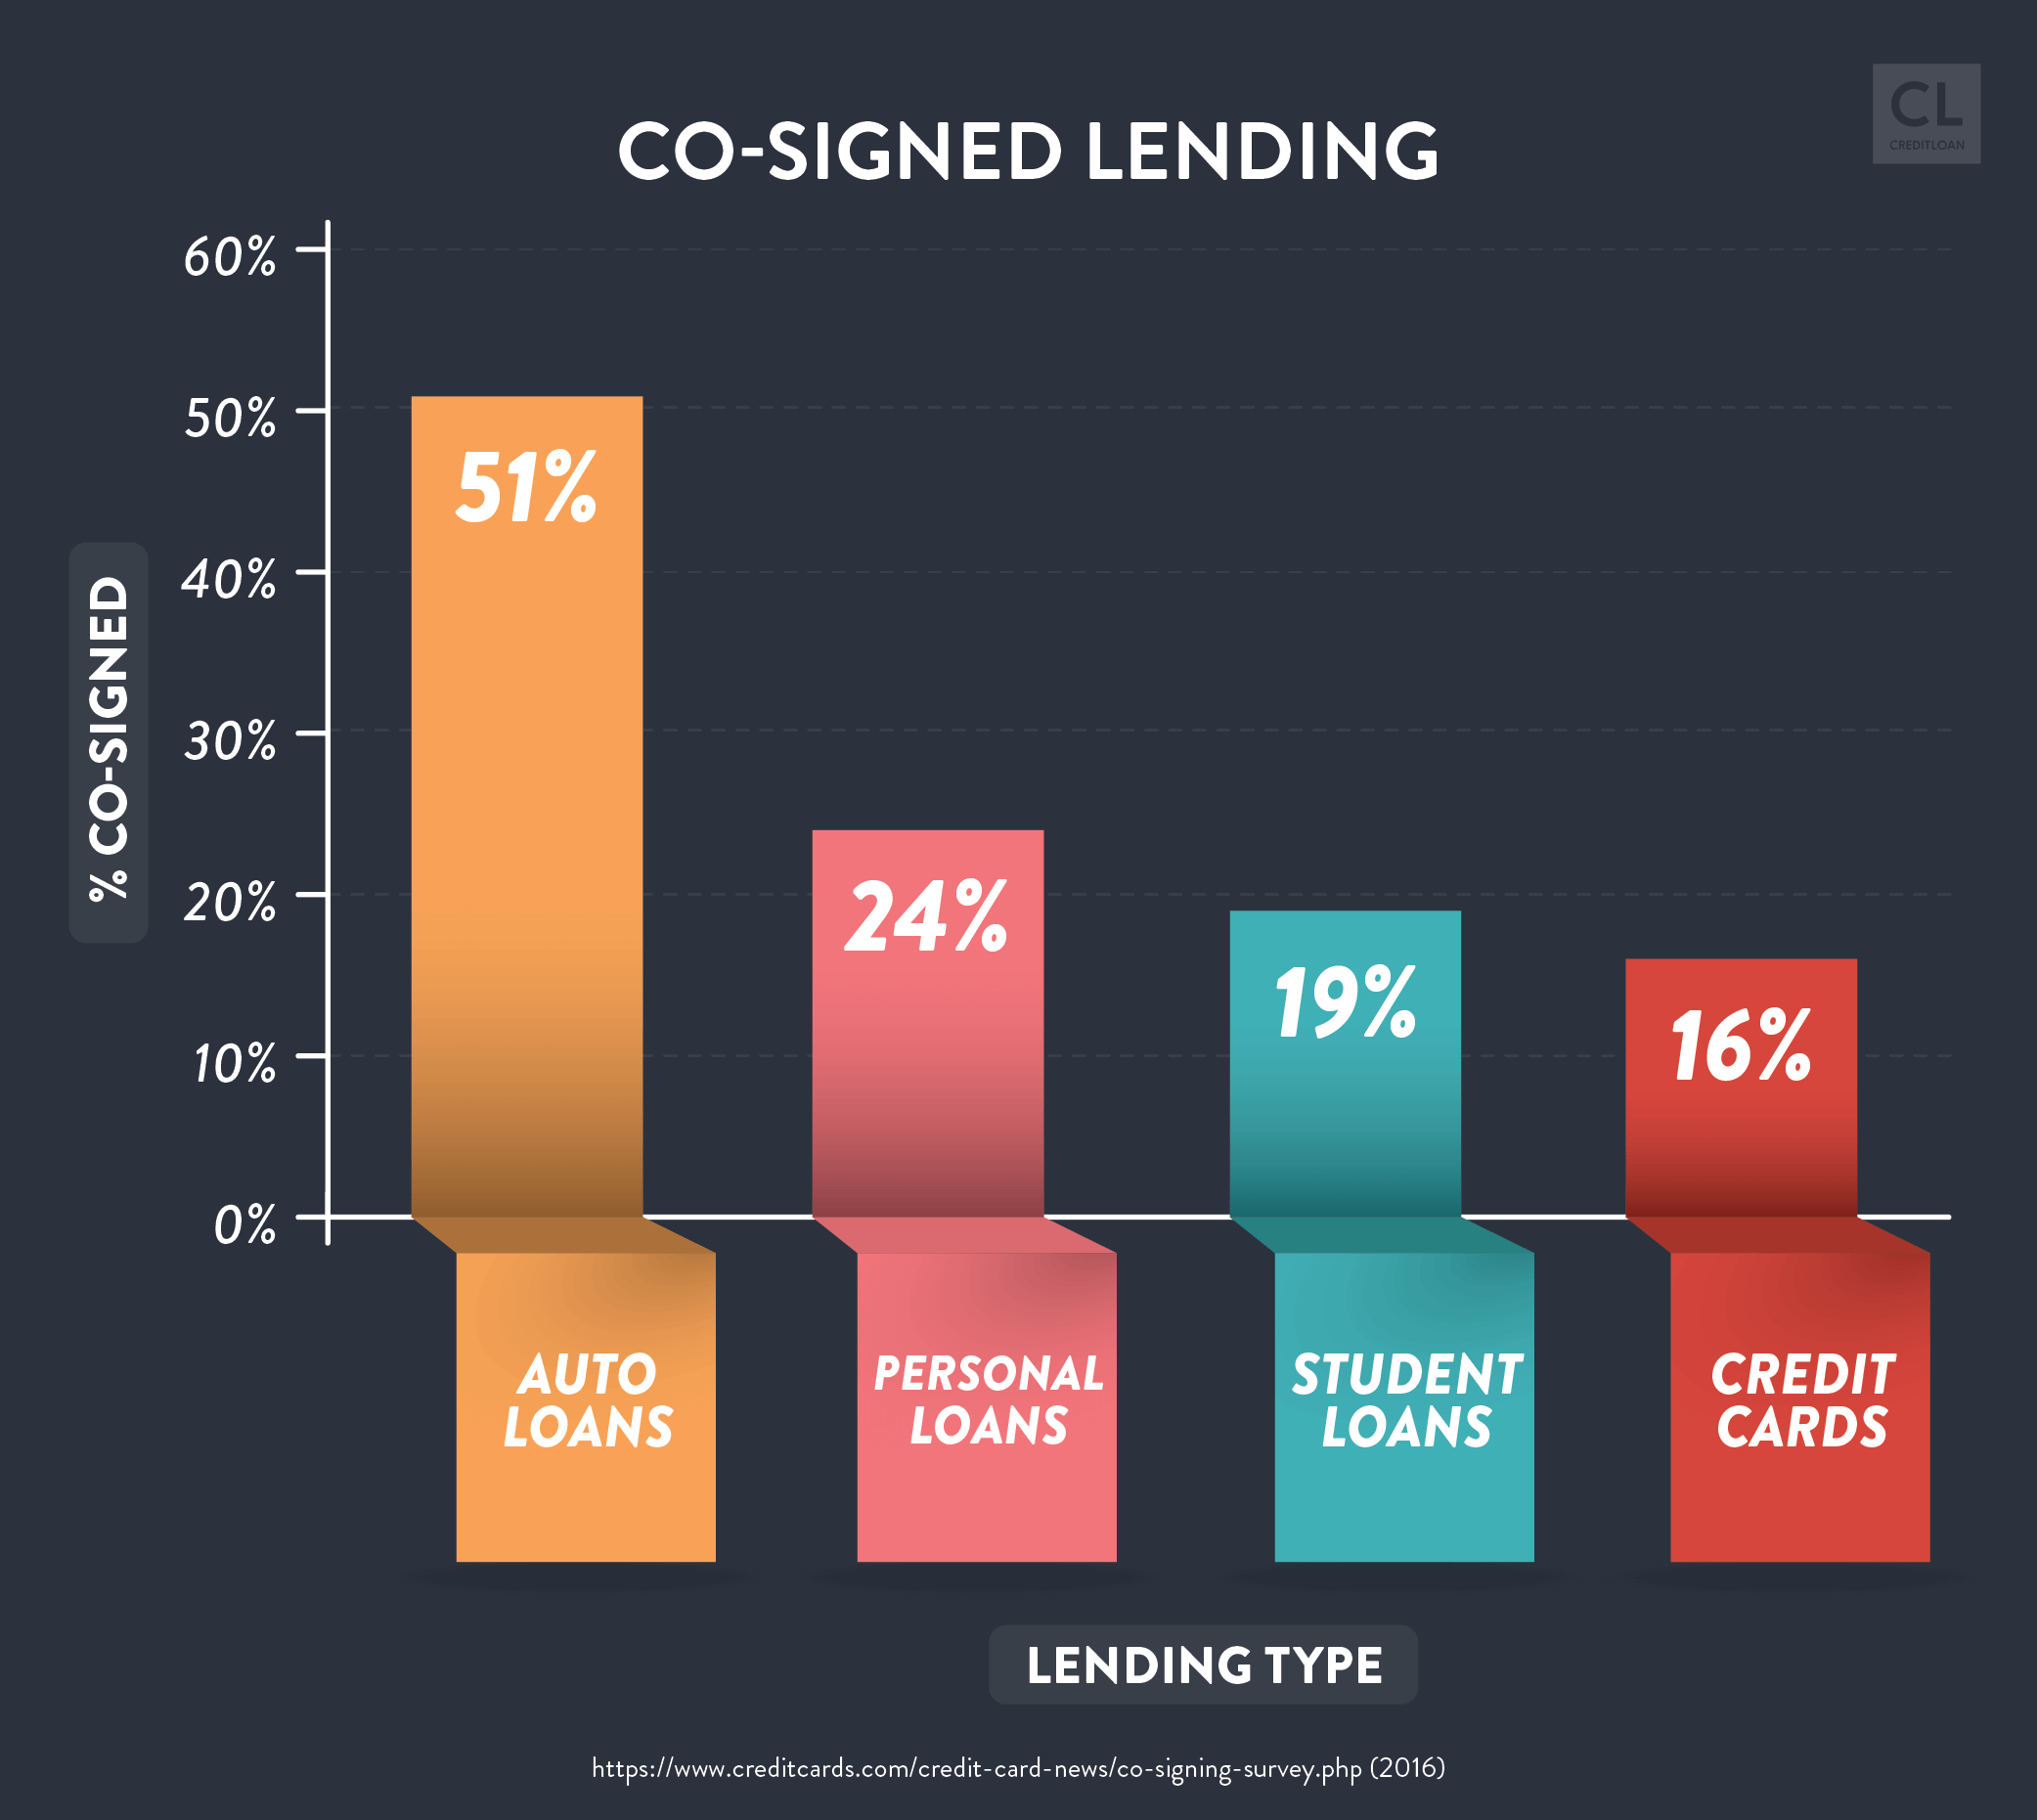 Percentage of Co-signed by Lending Type